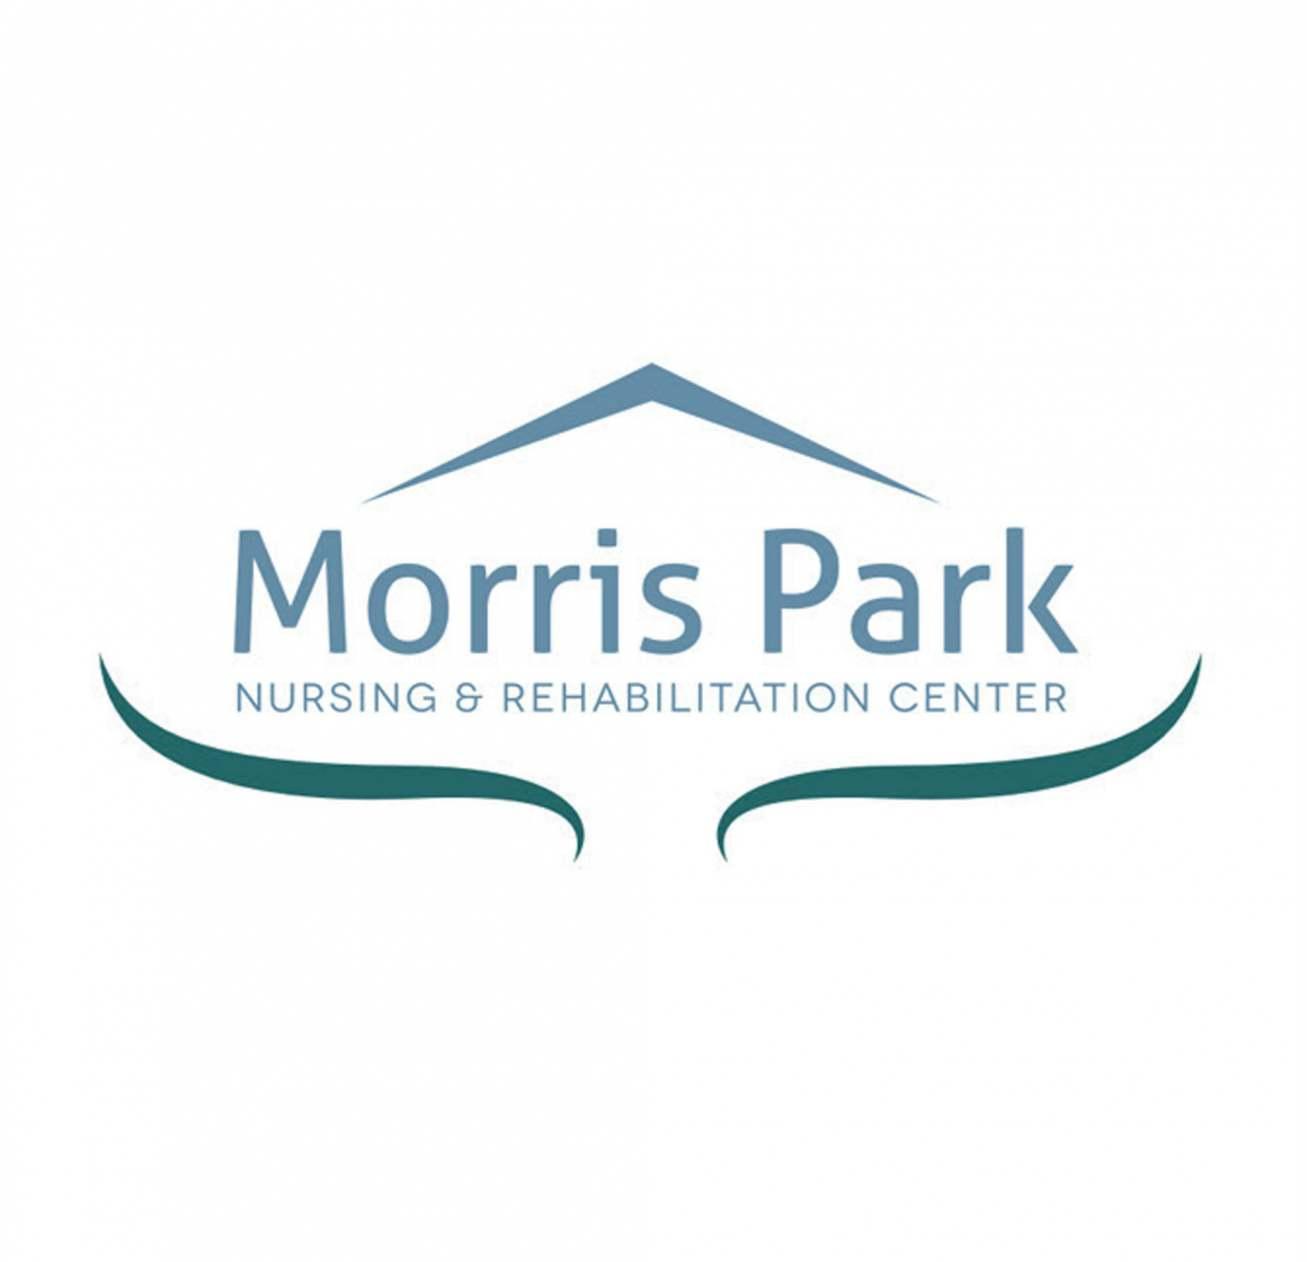 Morris Park Nursing & Rehabilitation Center Logo